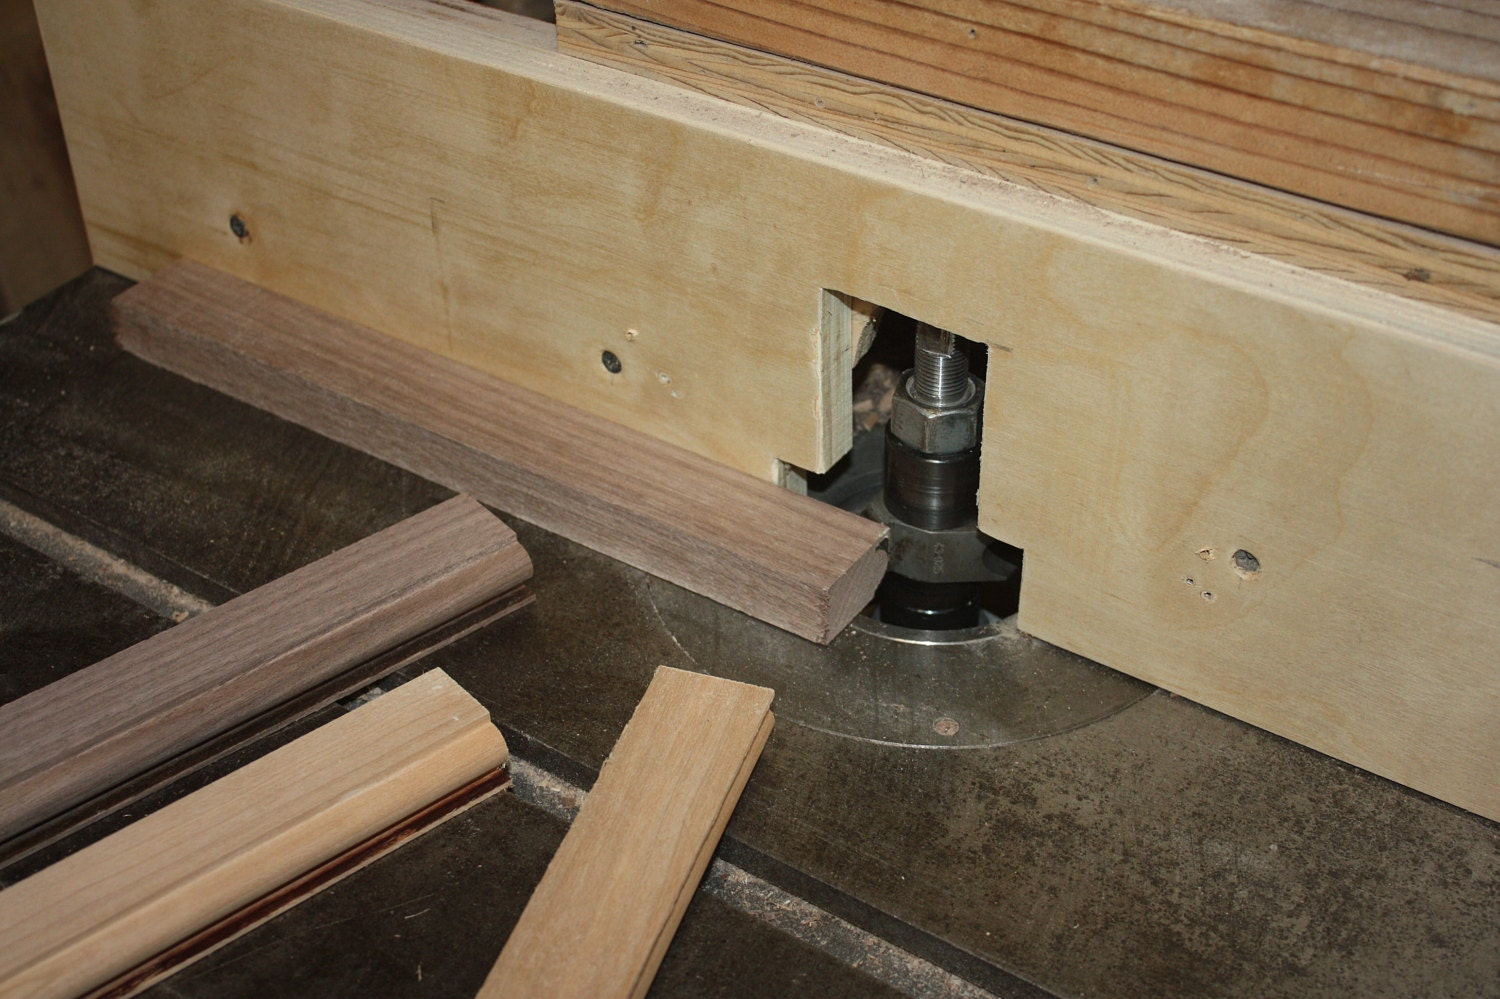 Making Handles for Jewelry Boxes on the Shaper